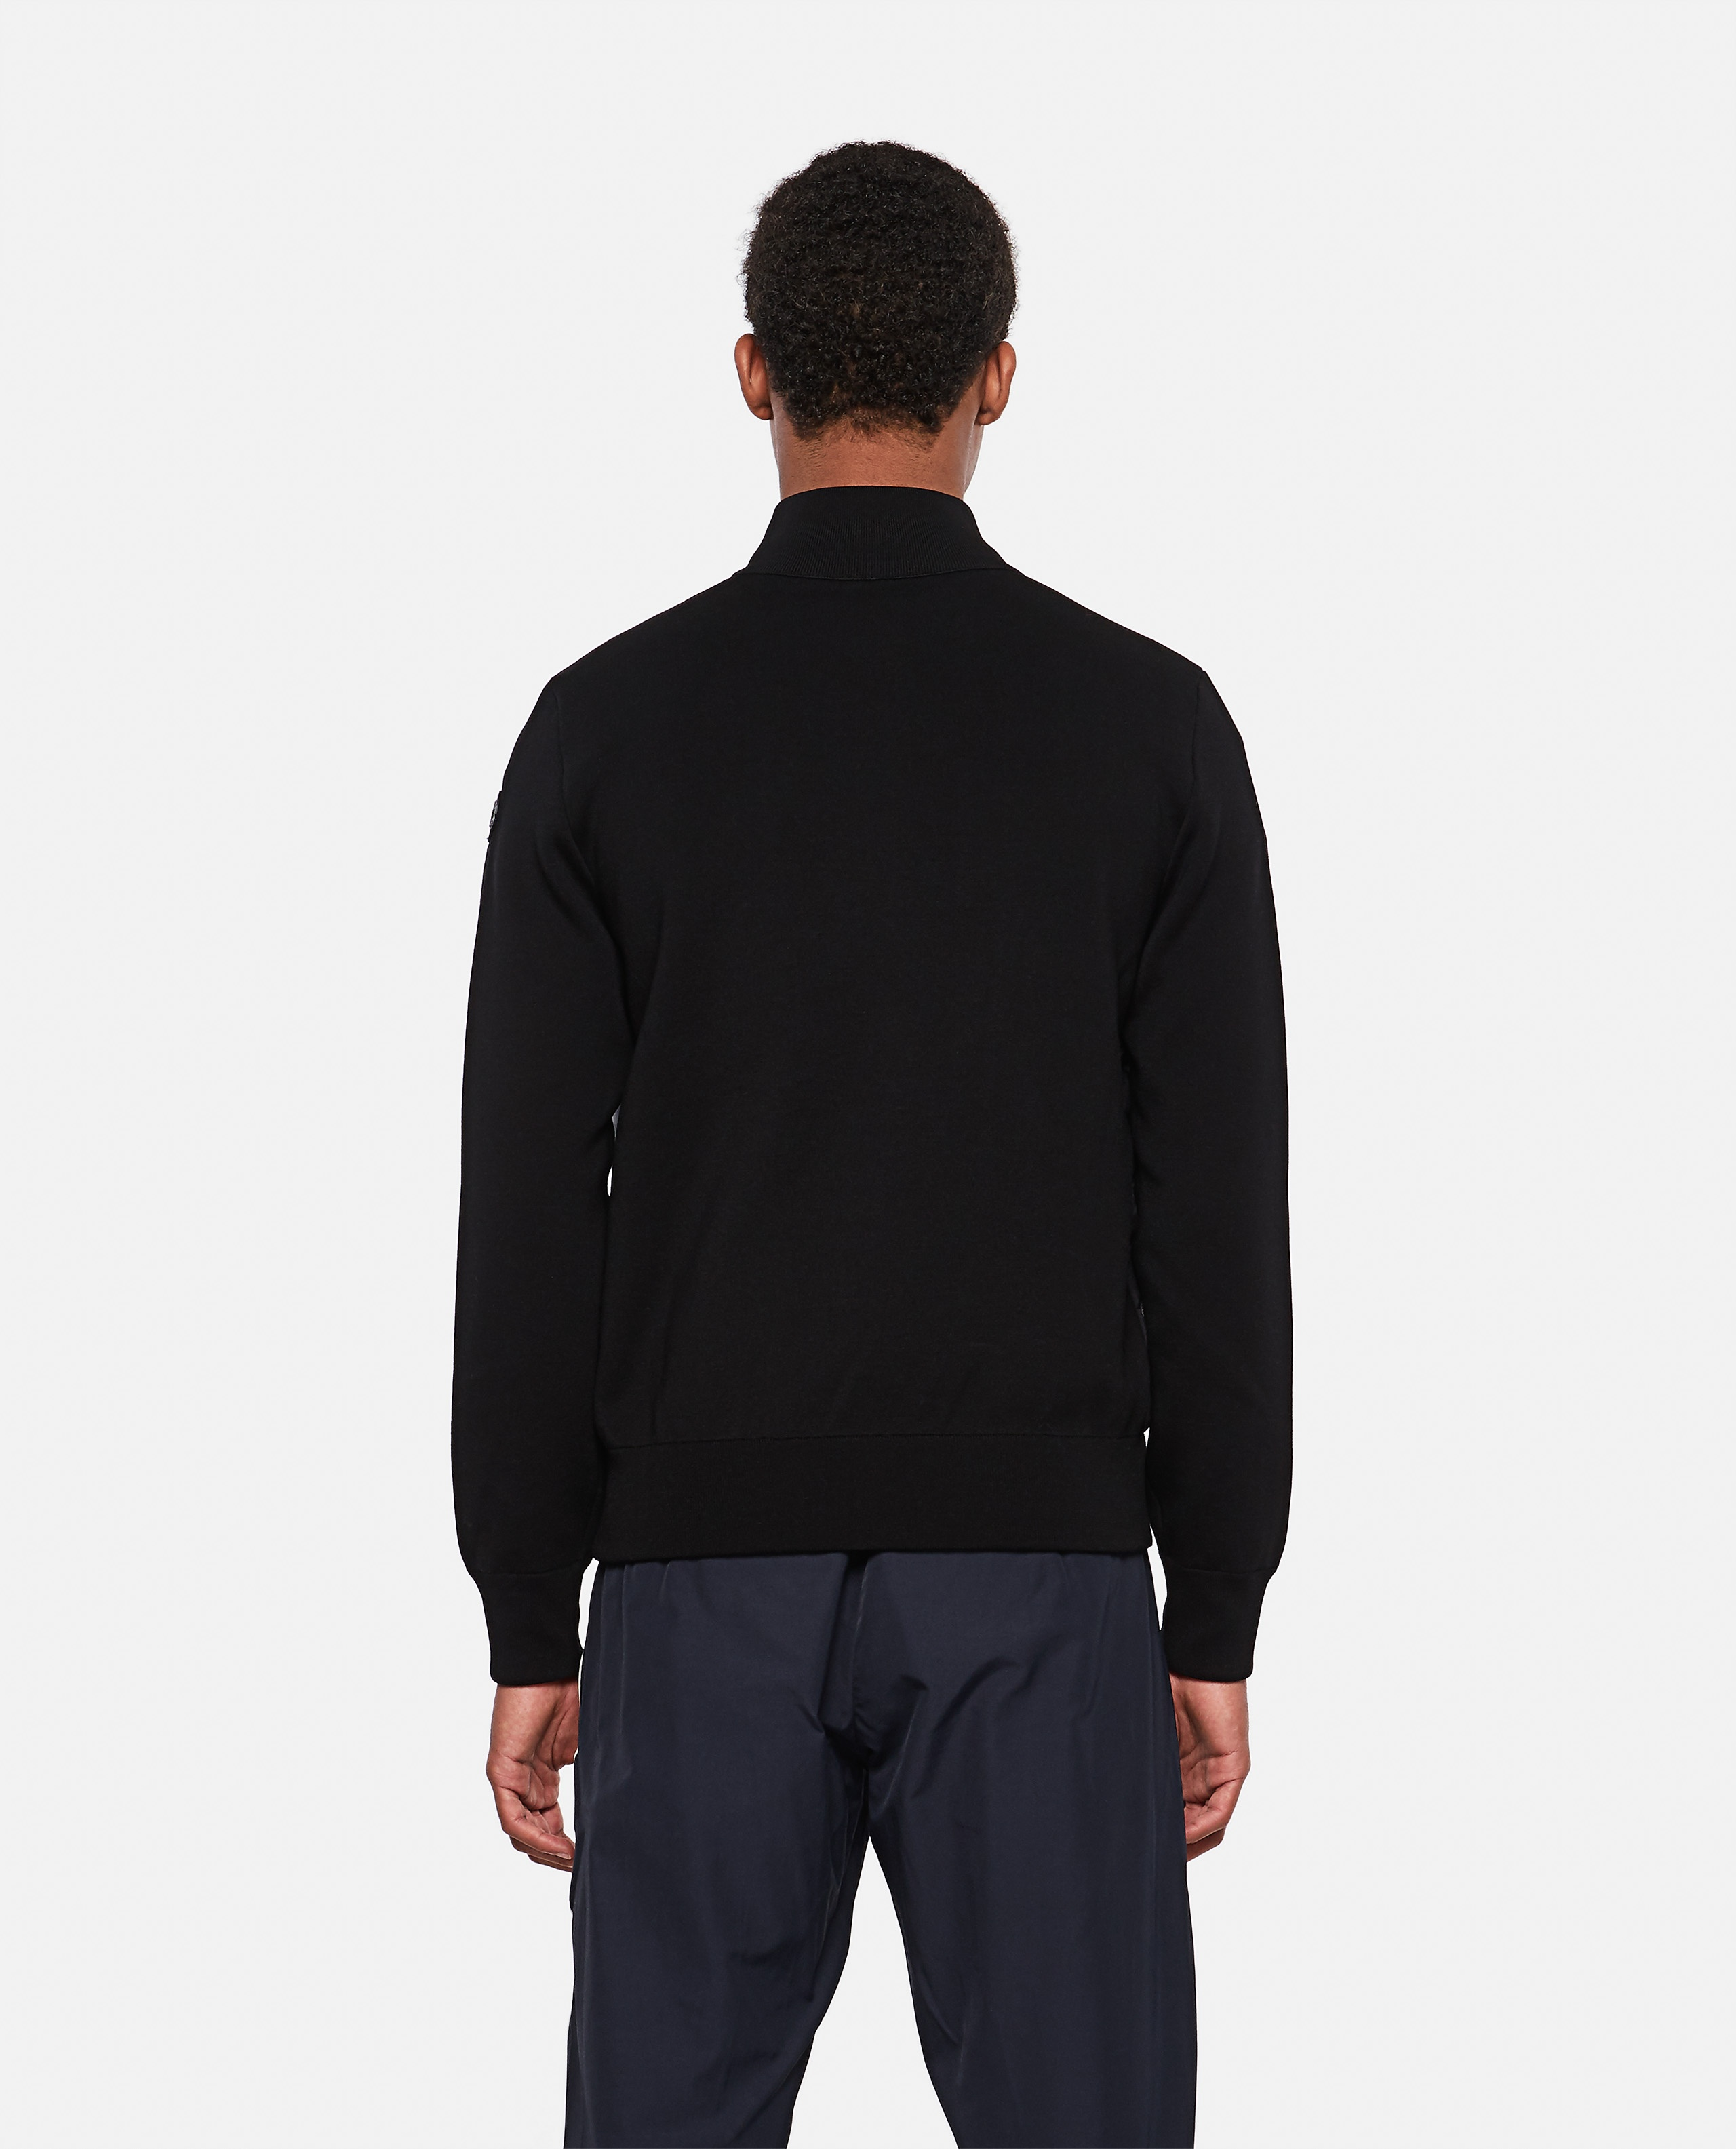 Tricot cardigan with padded detail Men Moncler 000315490046237 3